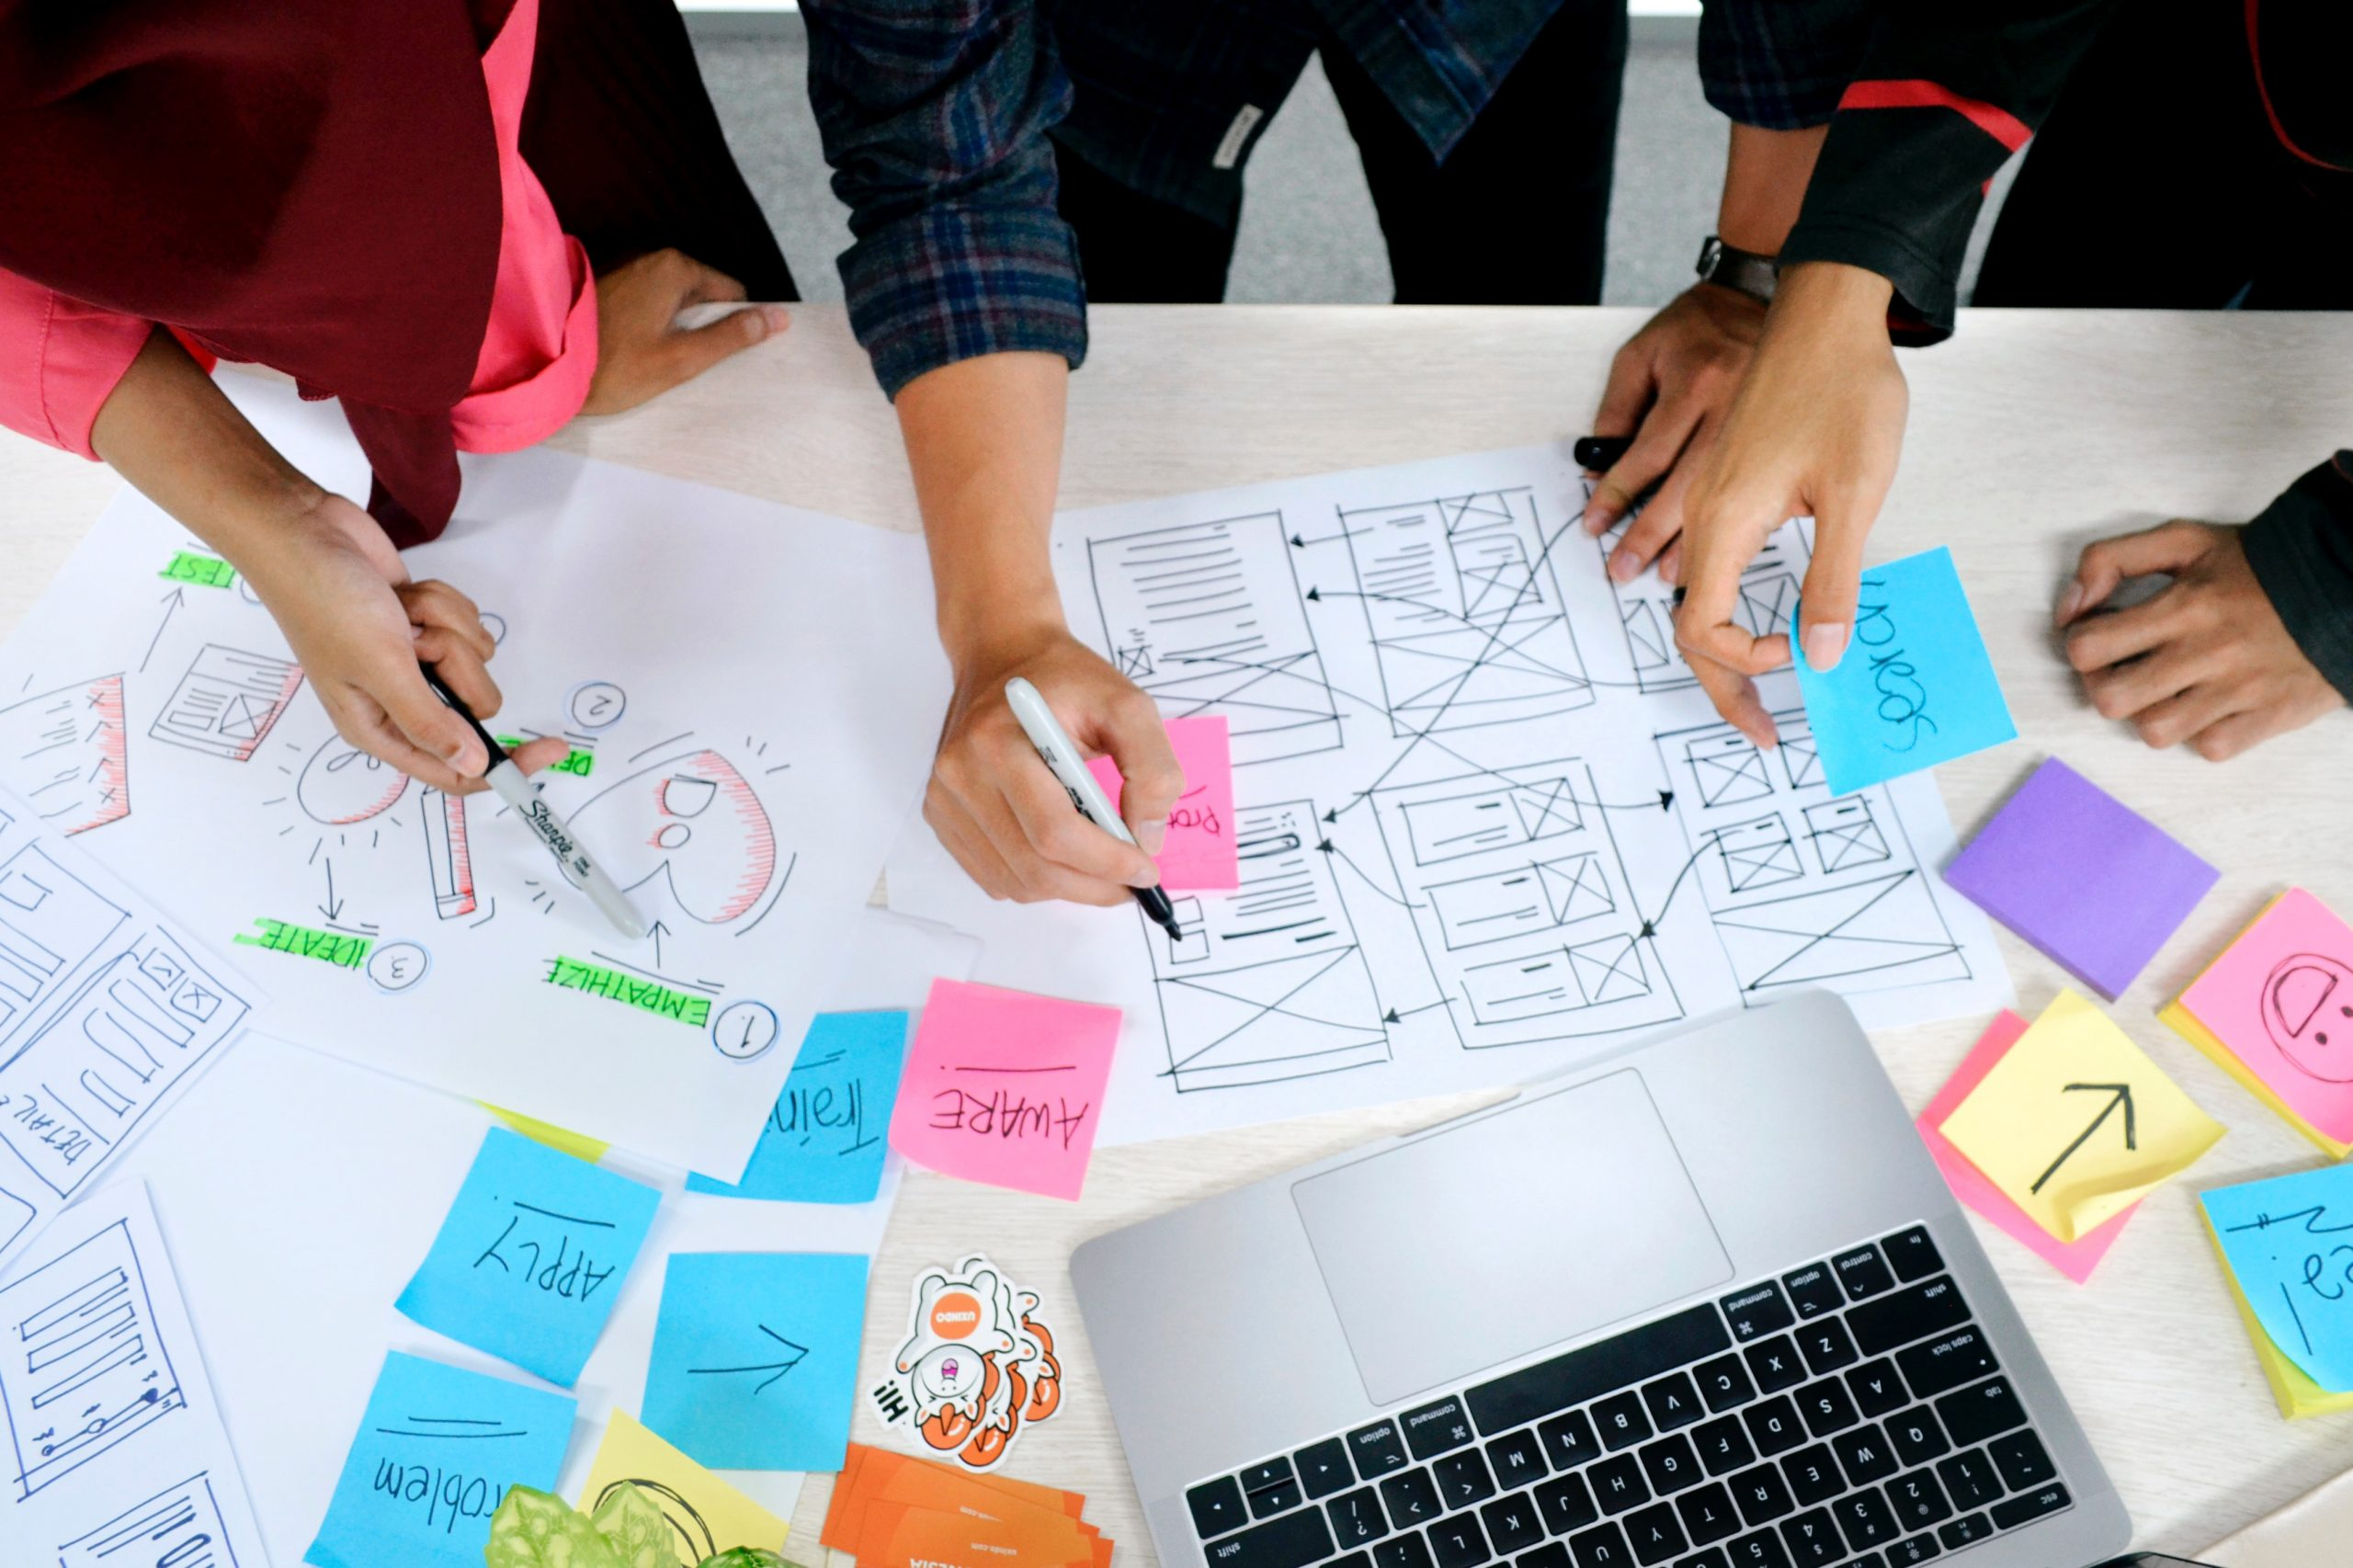 5 ways to know that you have a Great Business Idea